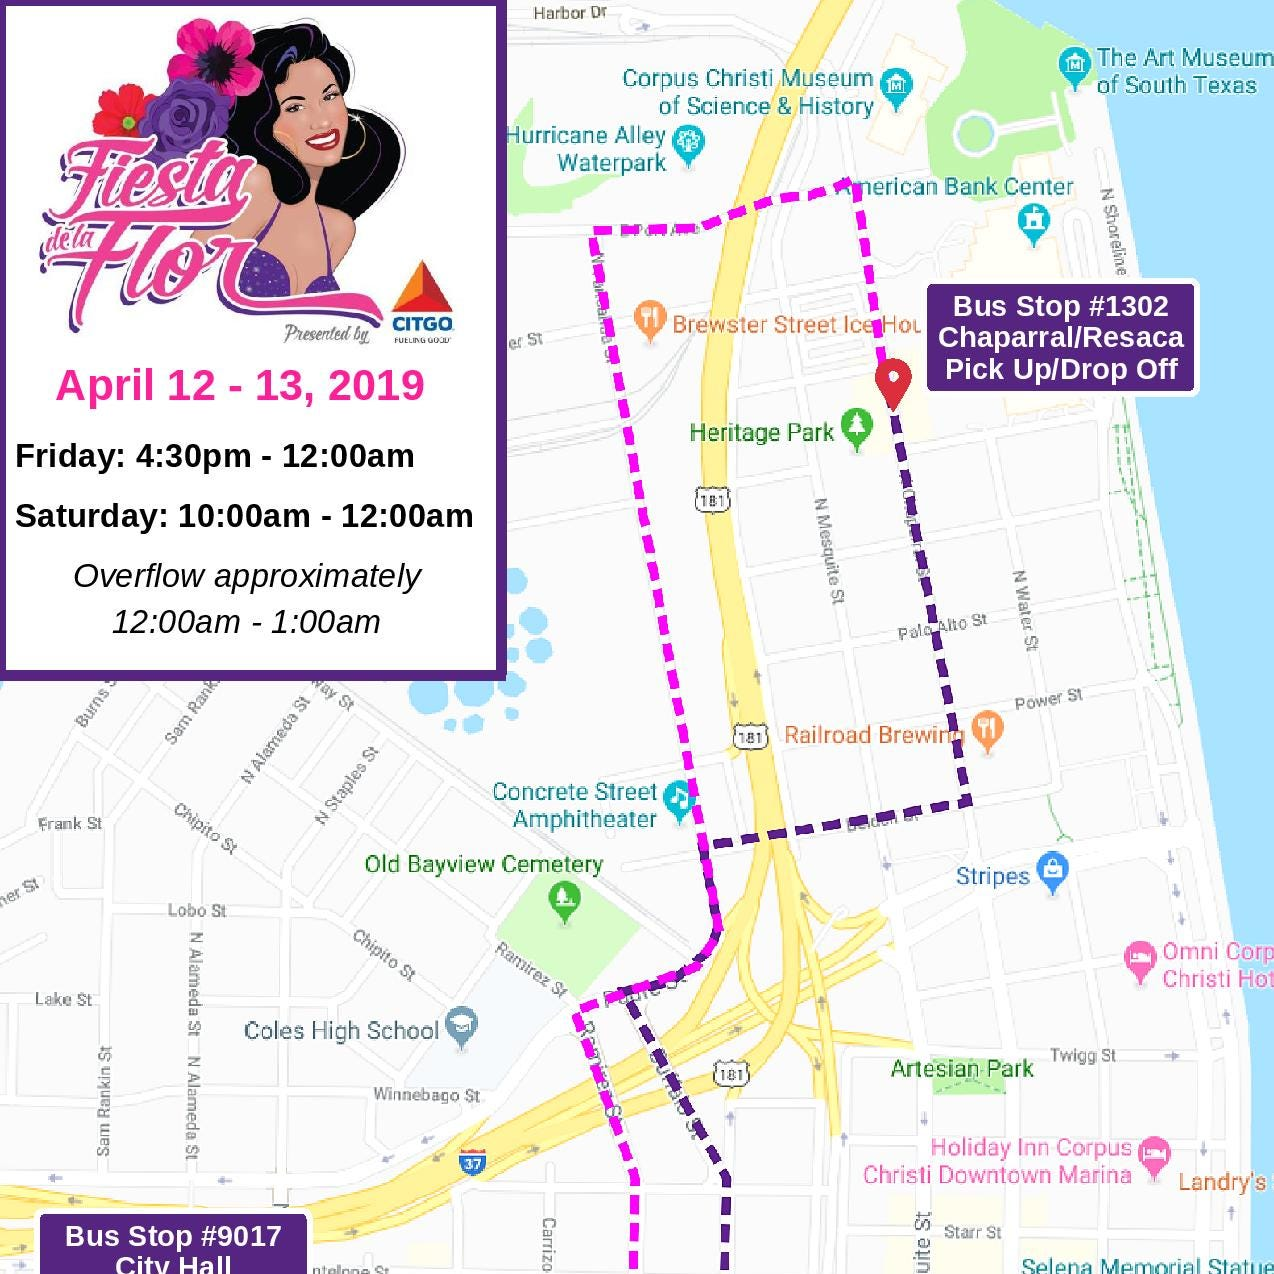 Fiesta de la Flor 2019: What you need to know about street closures, shuttle services